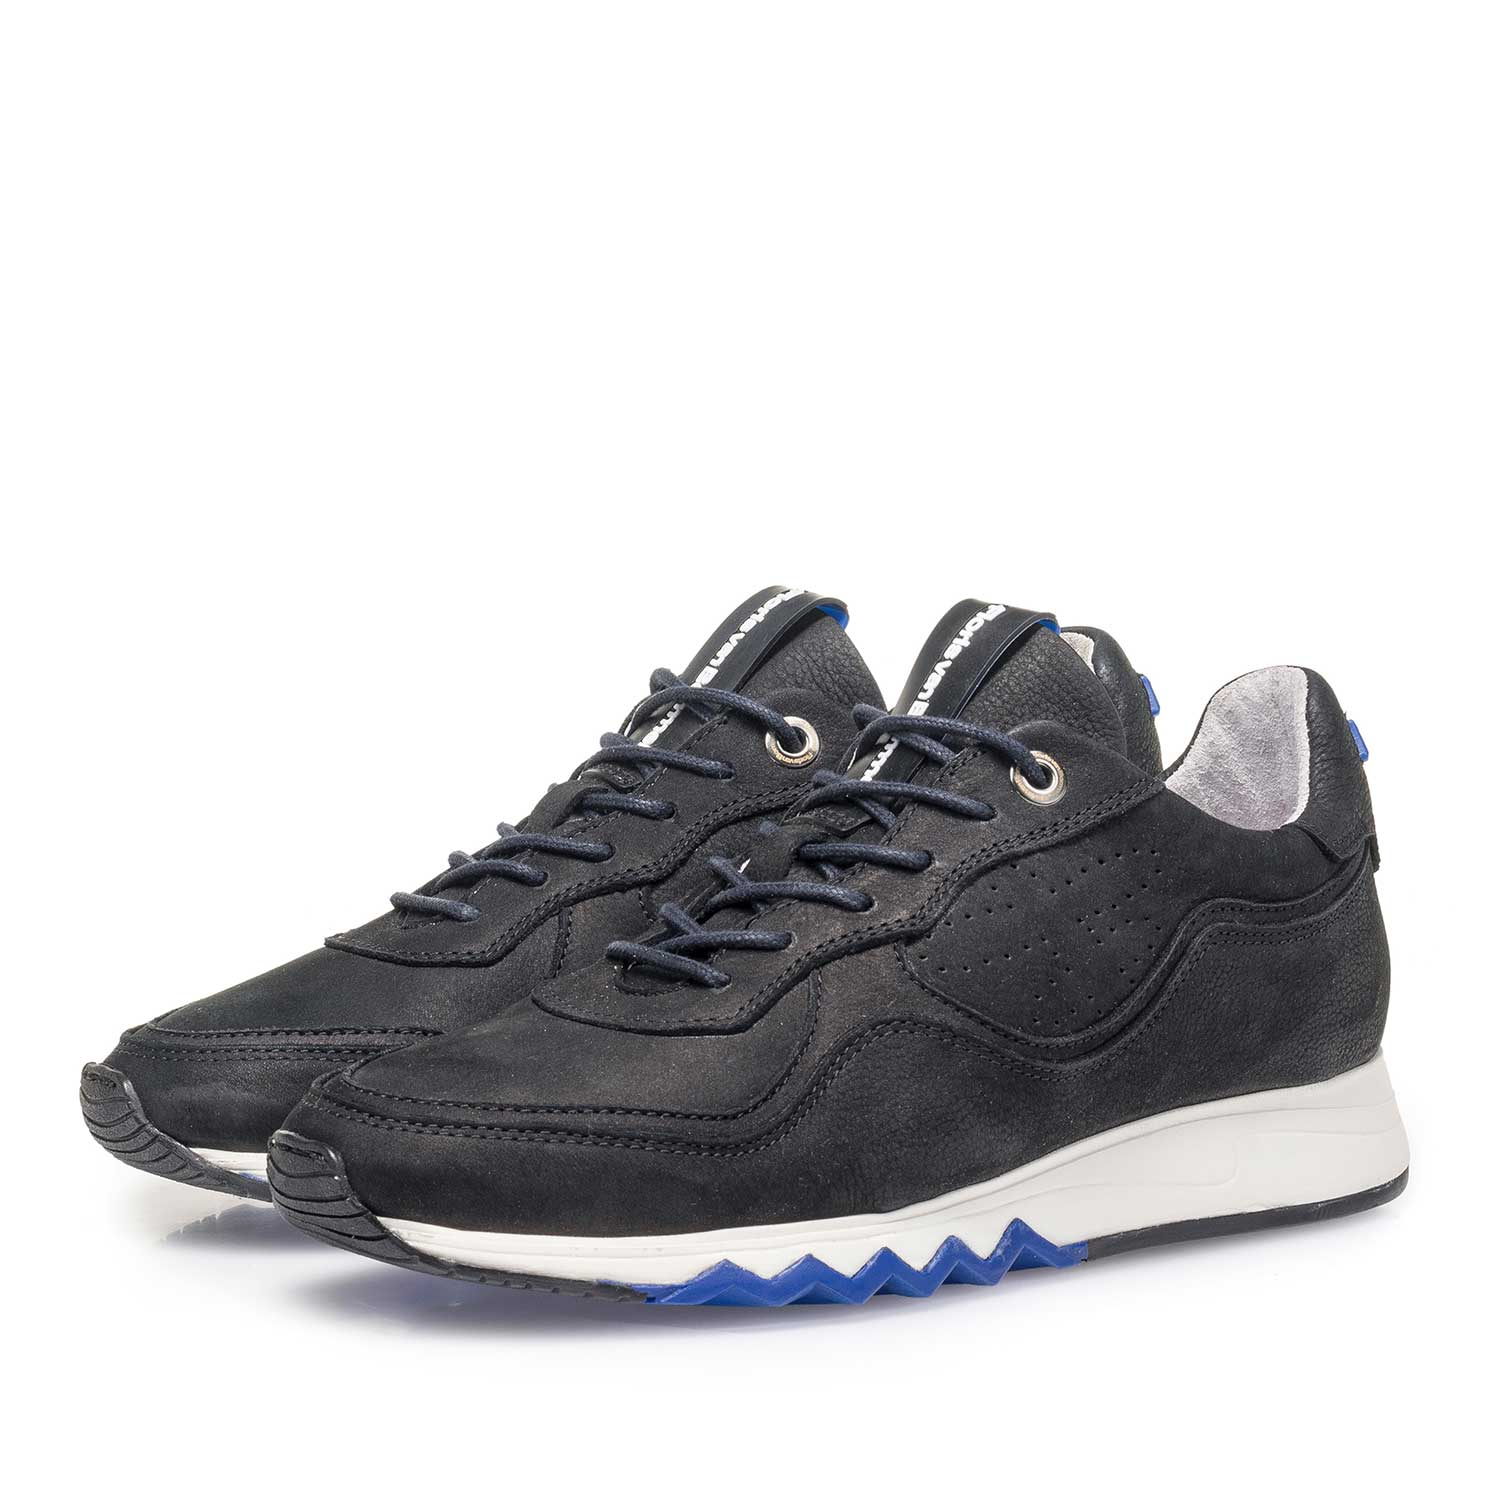 85265/02 - Black structured nubuck leather